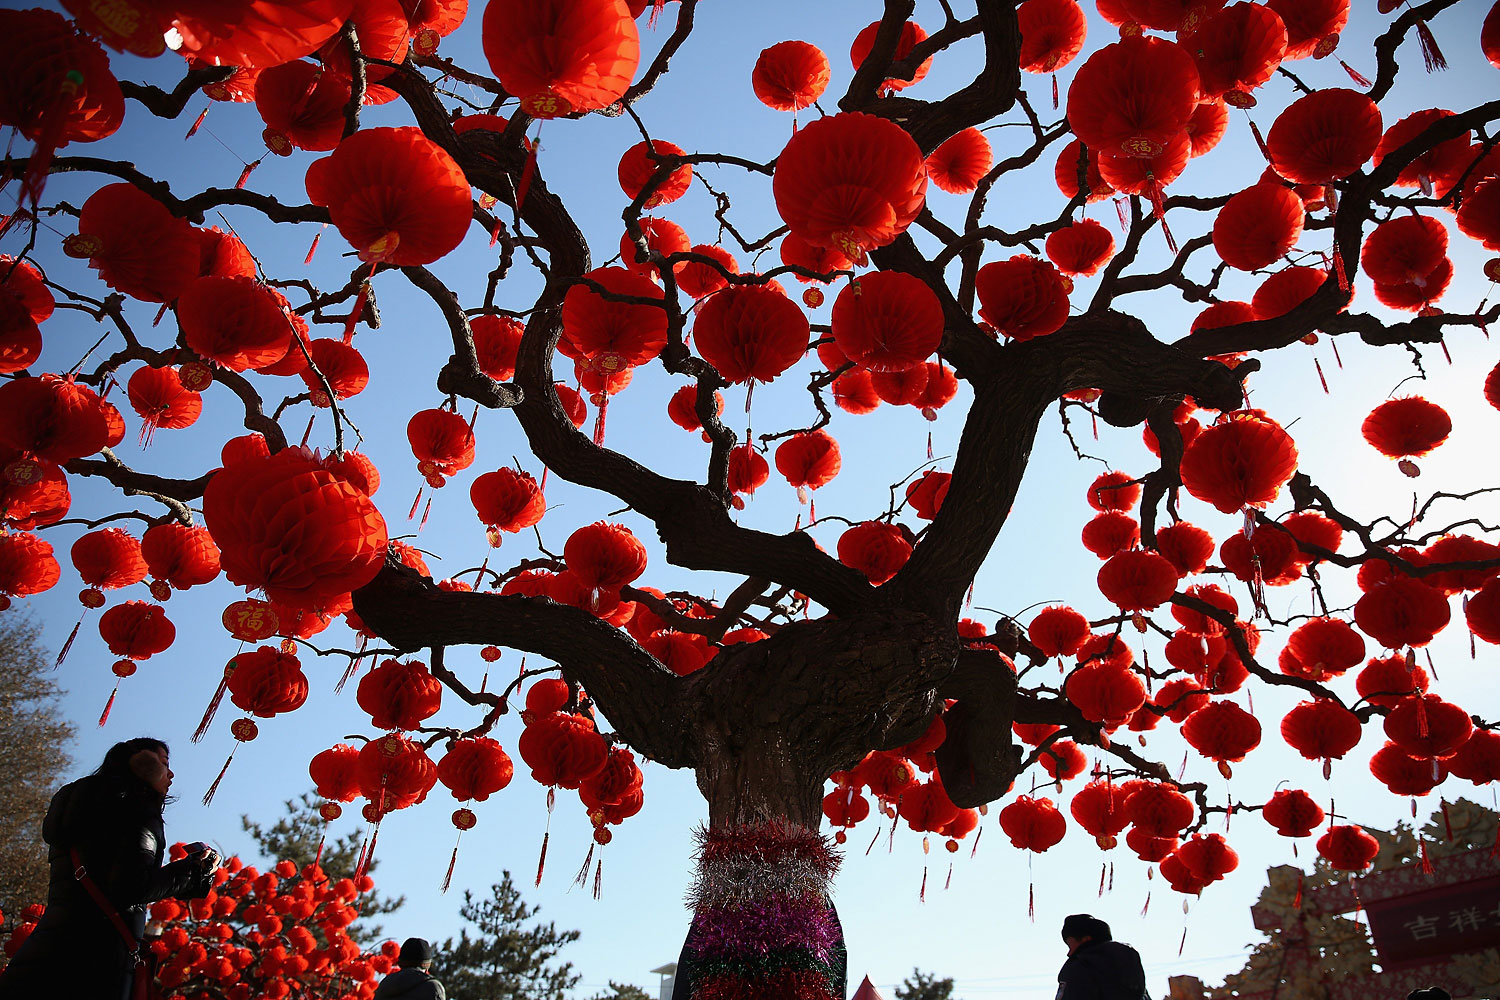 A Visitor passes the trees decorated with red lanterns at the Spring Festival Temple Fair for celebrating Chinese Lunar New Year of Horse at the Temple of Earth park on Jan. 30, 2014 in Beijing.